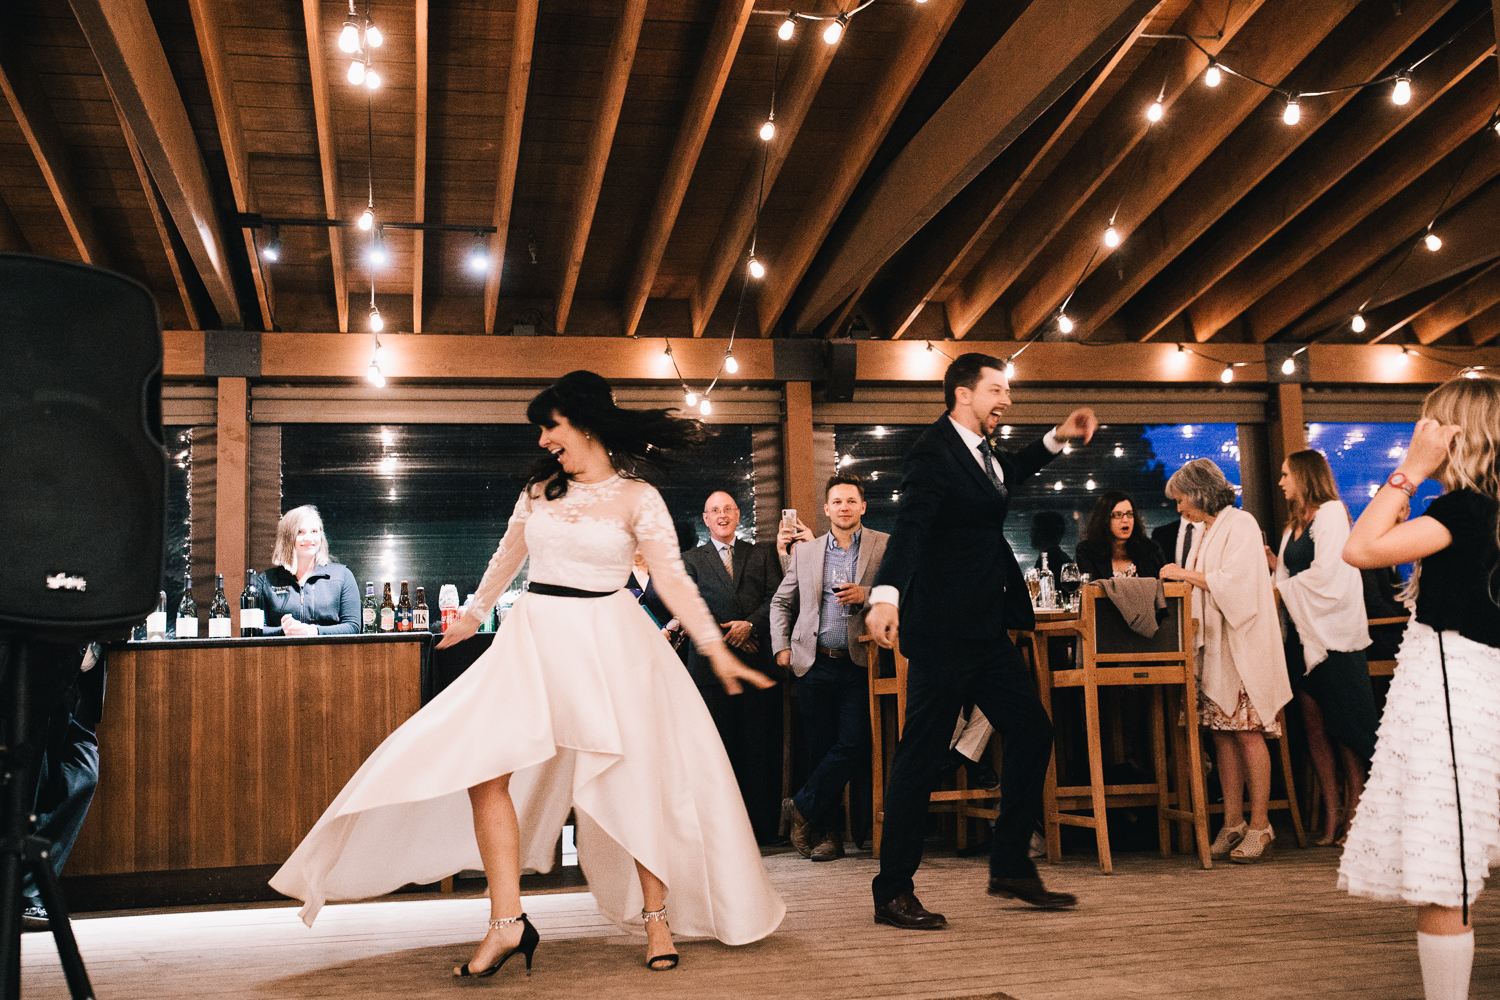 2019_05_ 182019.05.19 Lisa + Eddie South Bay Wedding Blog Photos Edited For Web 0143.jpg